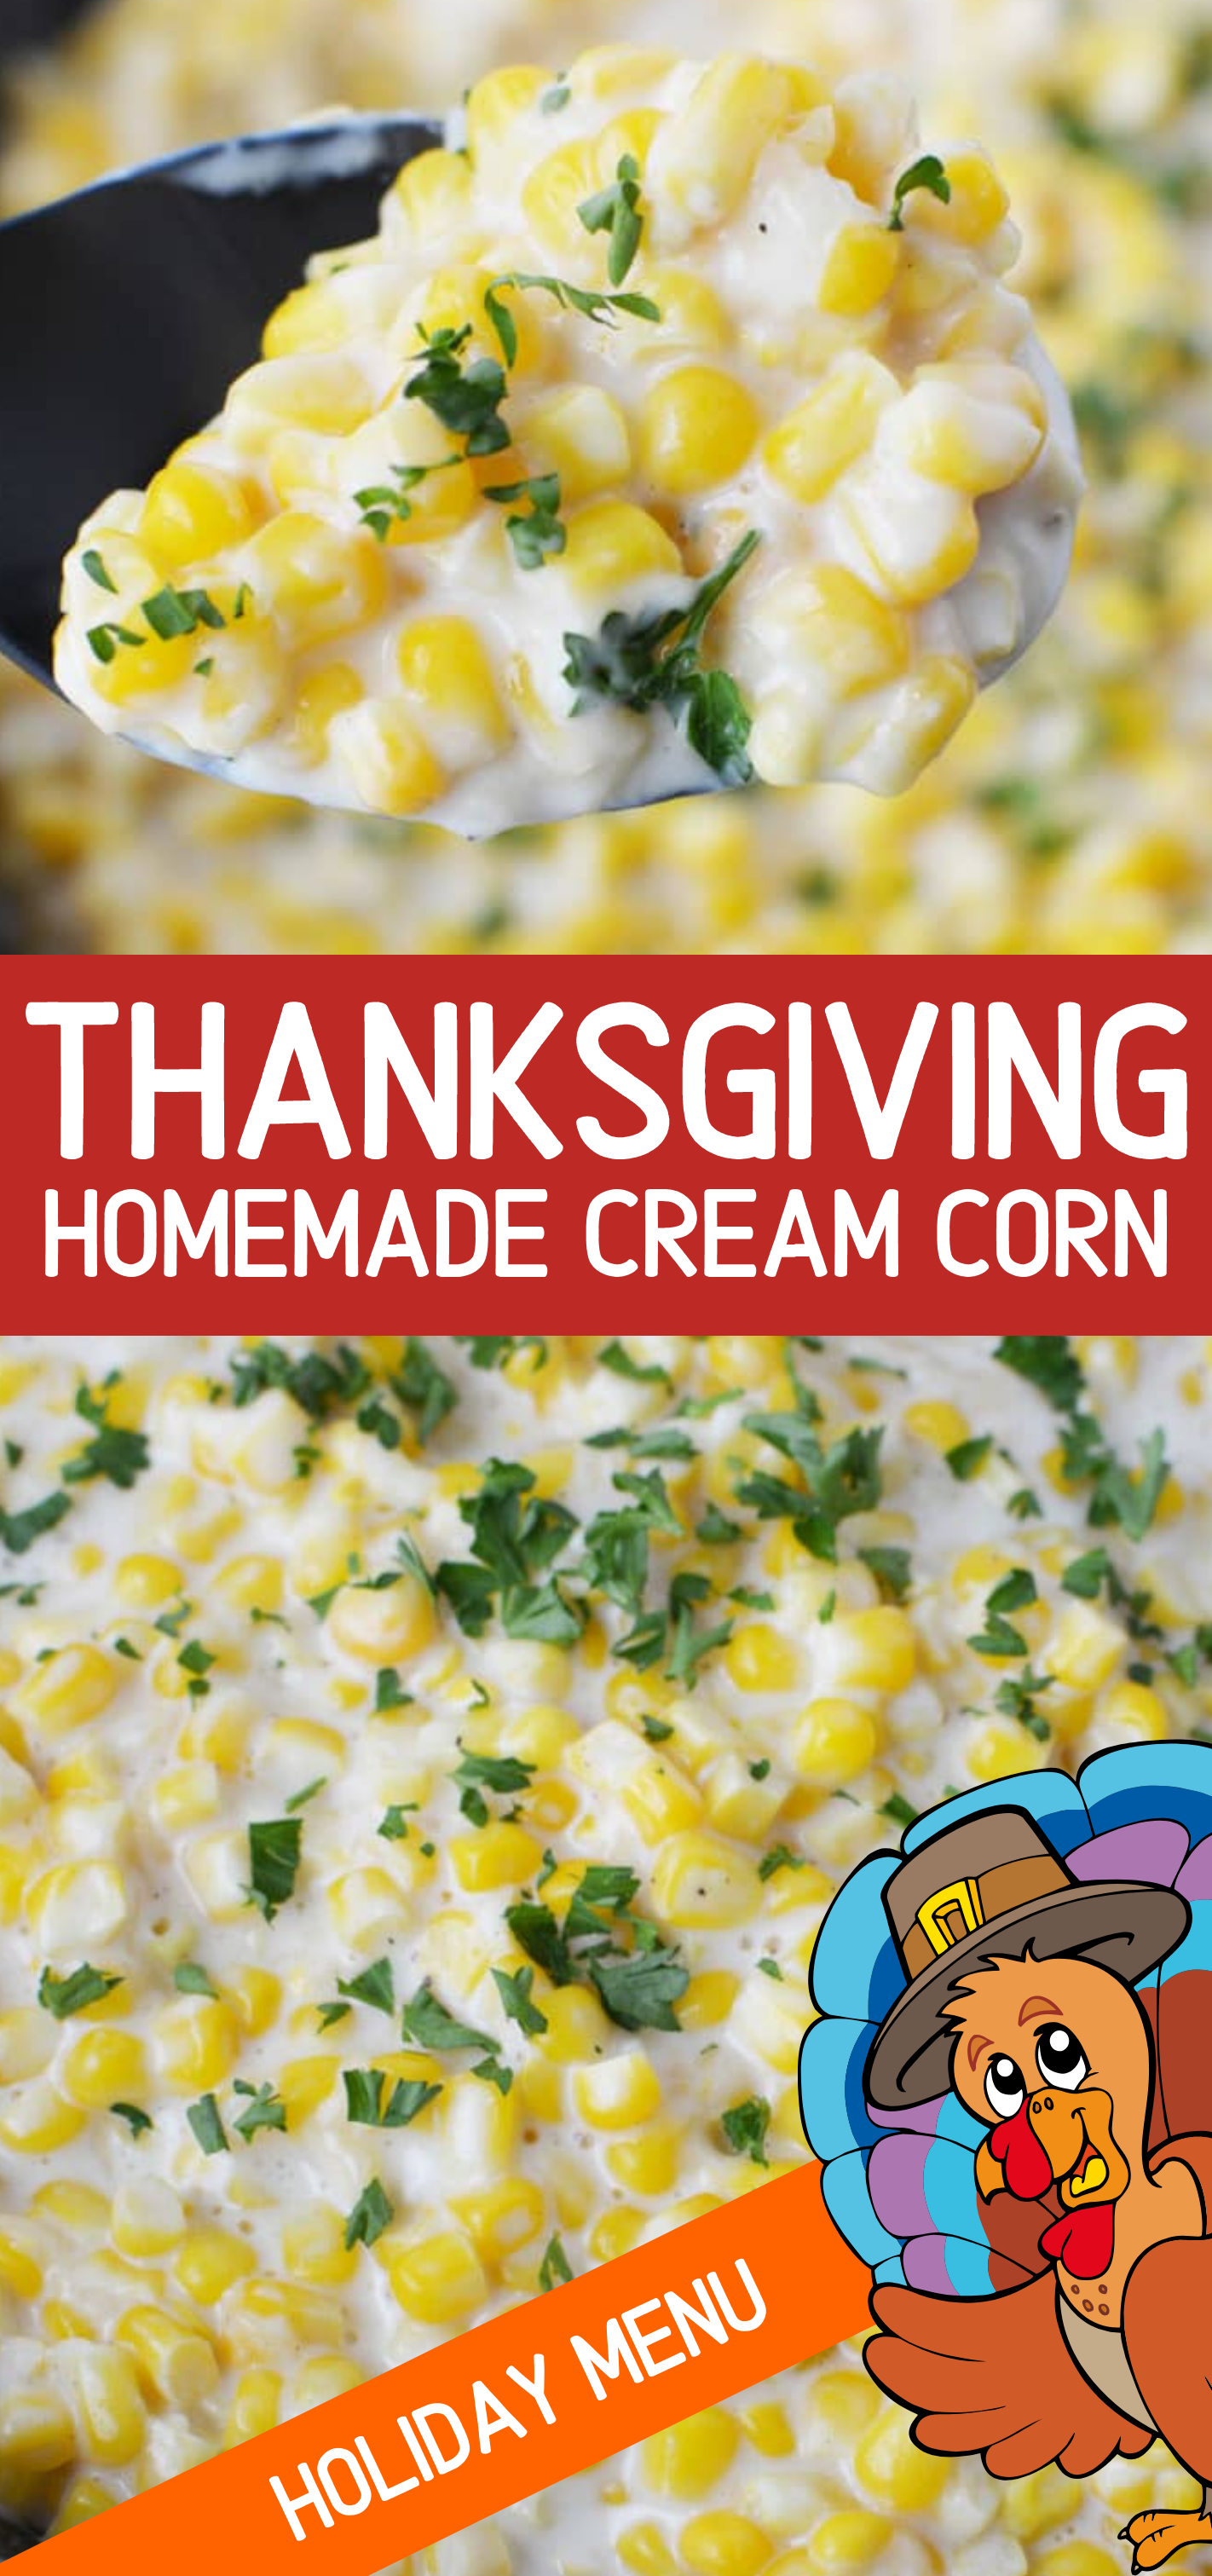 Thanksgiving Cream Corn Recipe #fooddinners